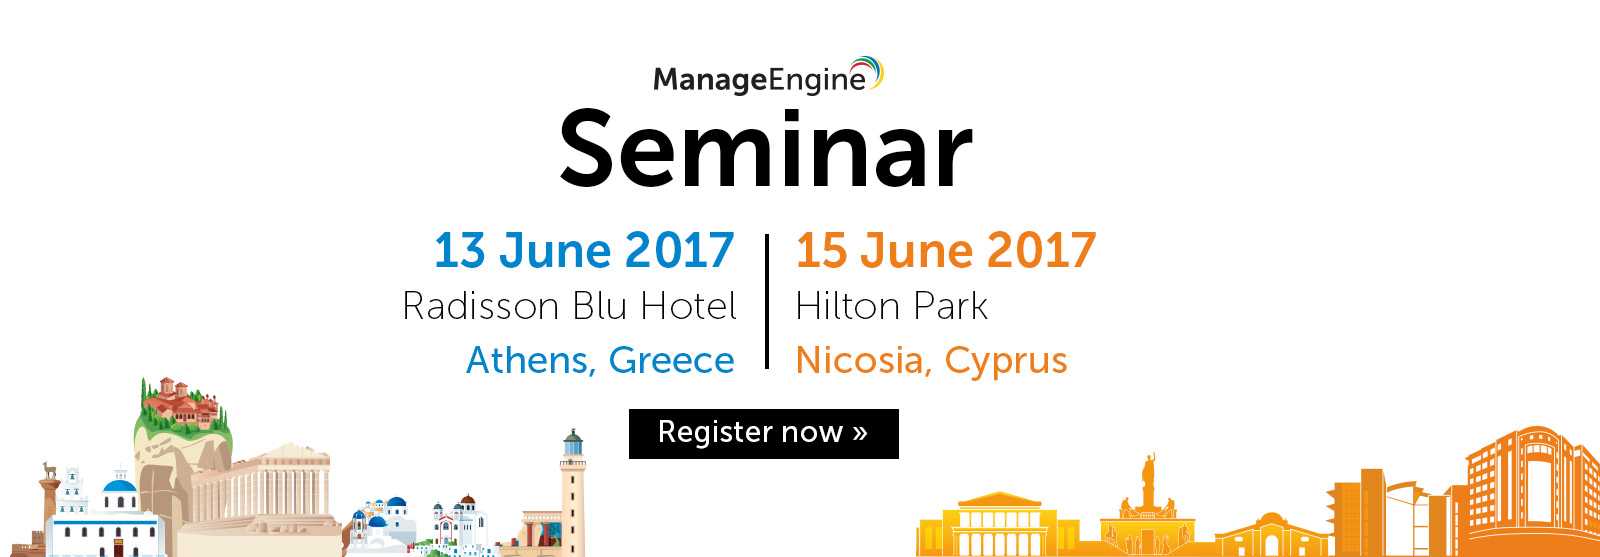 Join us for the first ever Manage Engine Events in Greece and Cyprus